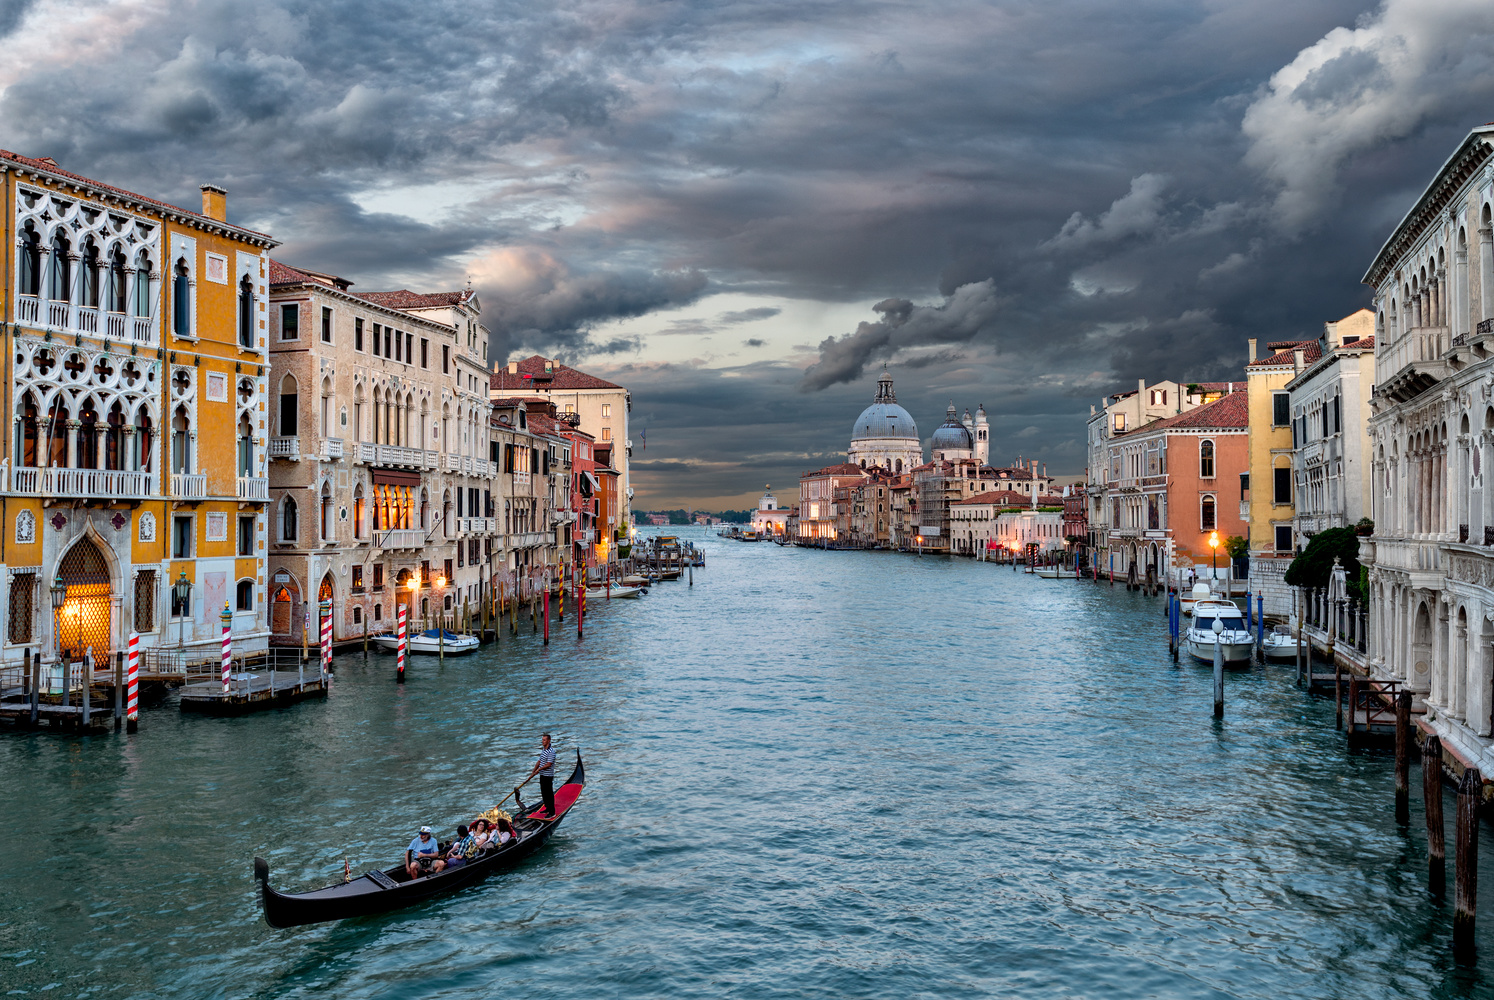 From a Wooden Bridge in Venice by Chris Ward